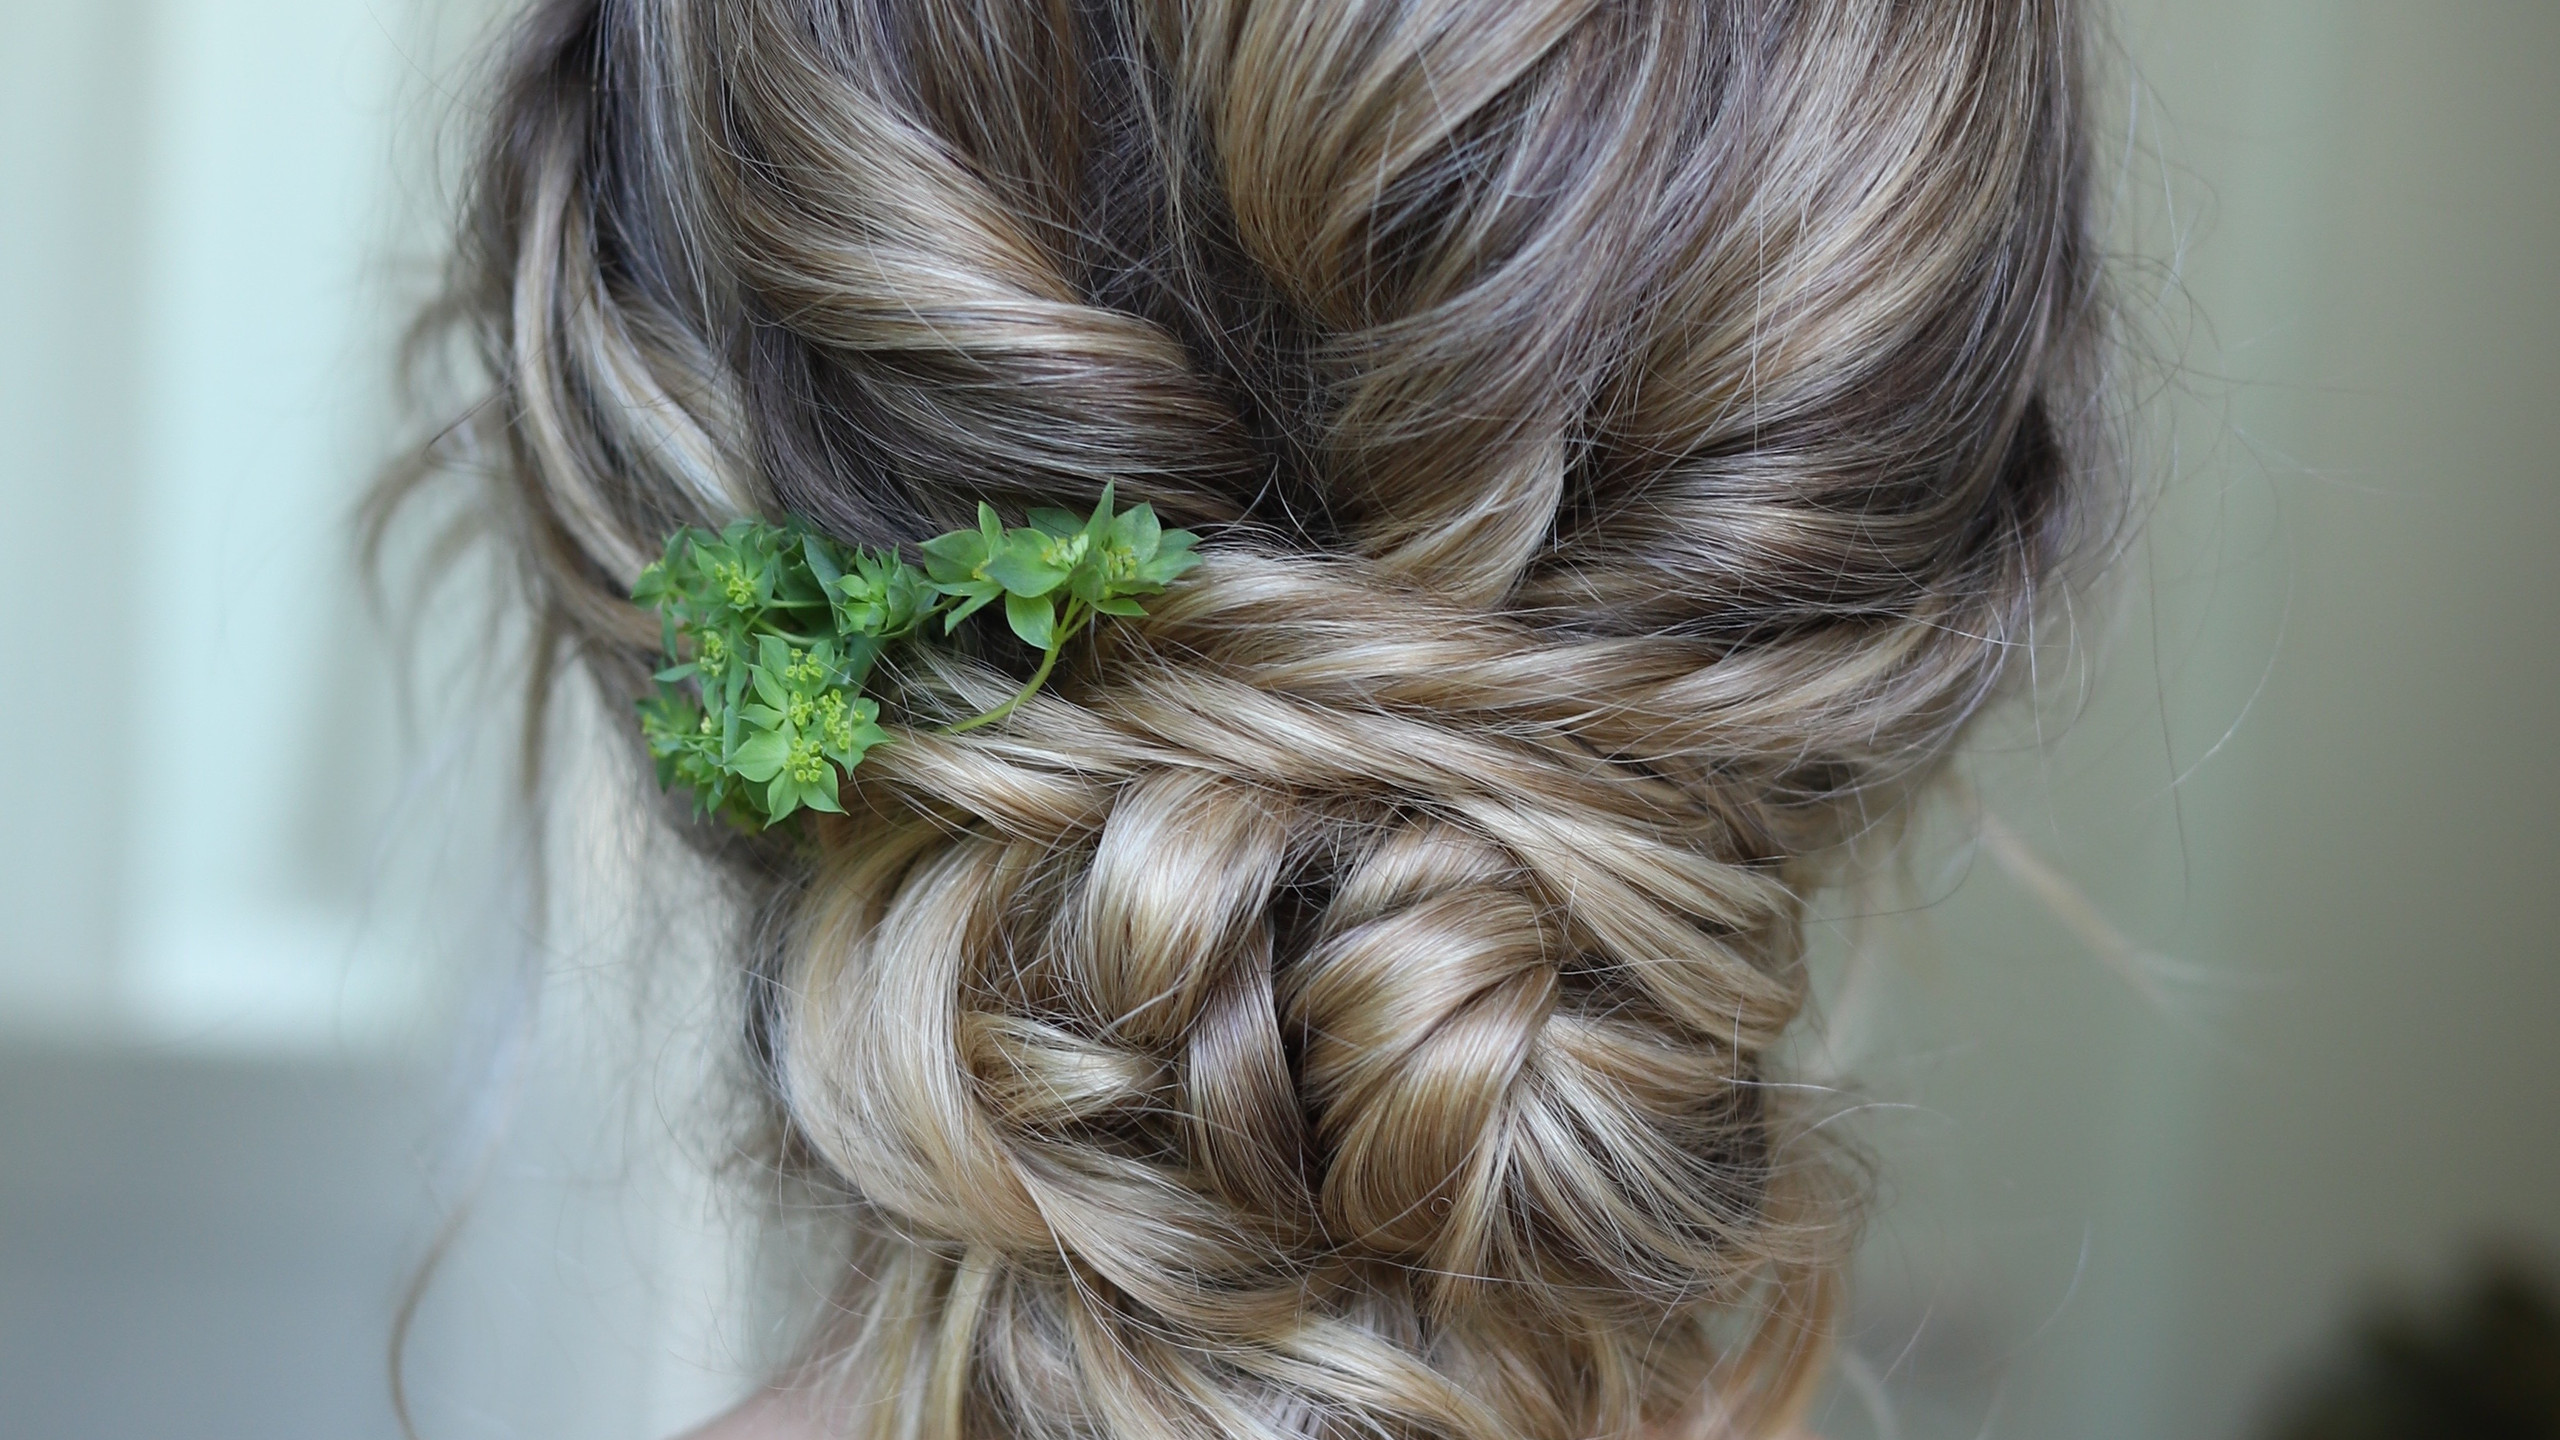 Updo with foliage